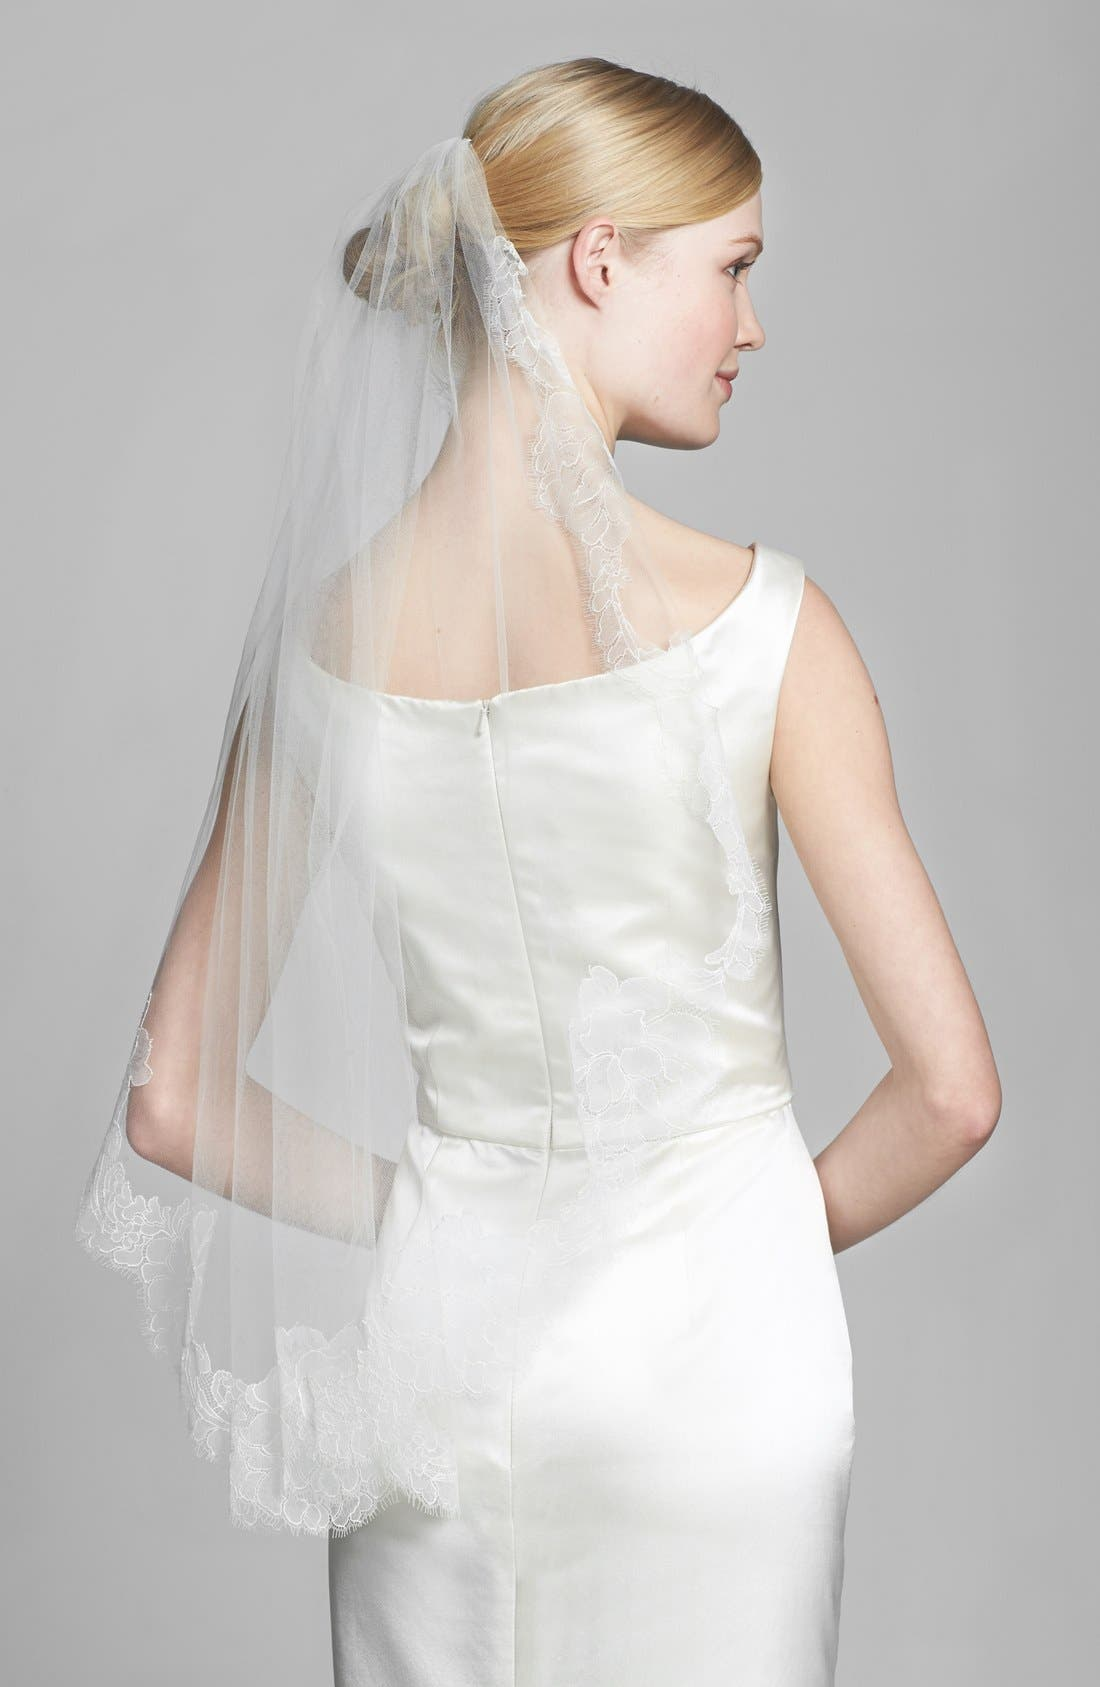 Alternate Image 1 Selected - Veil Trends 'Alexa' Chantilly Lace Veil